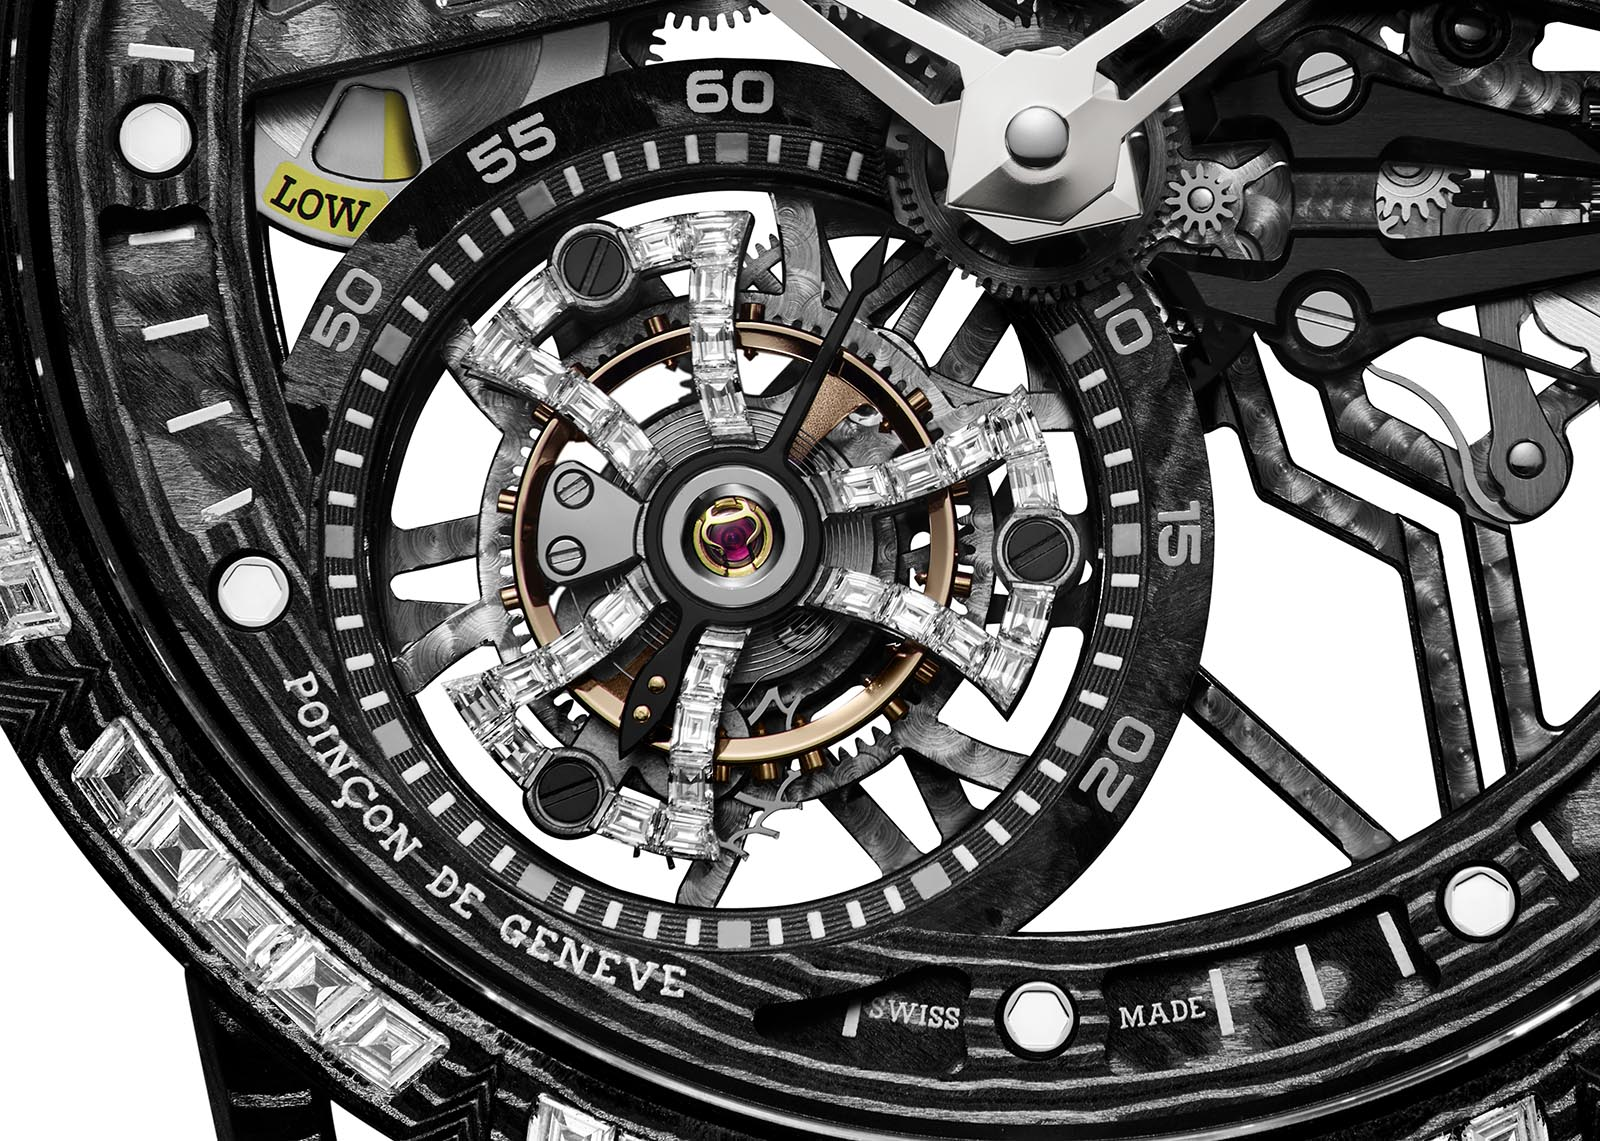 Roger Dubuis Excalibur Spider Ultimate Carbon 5